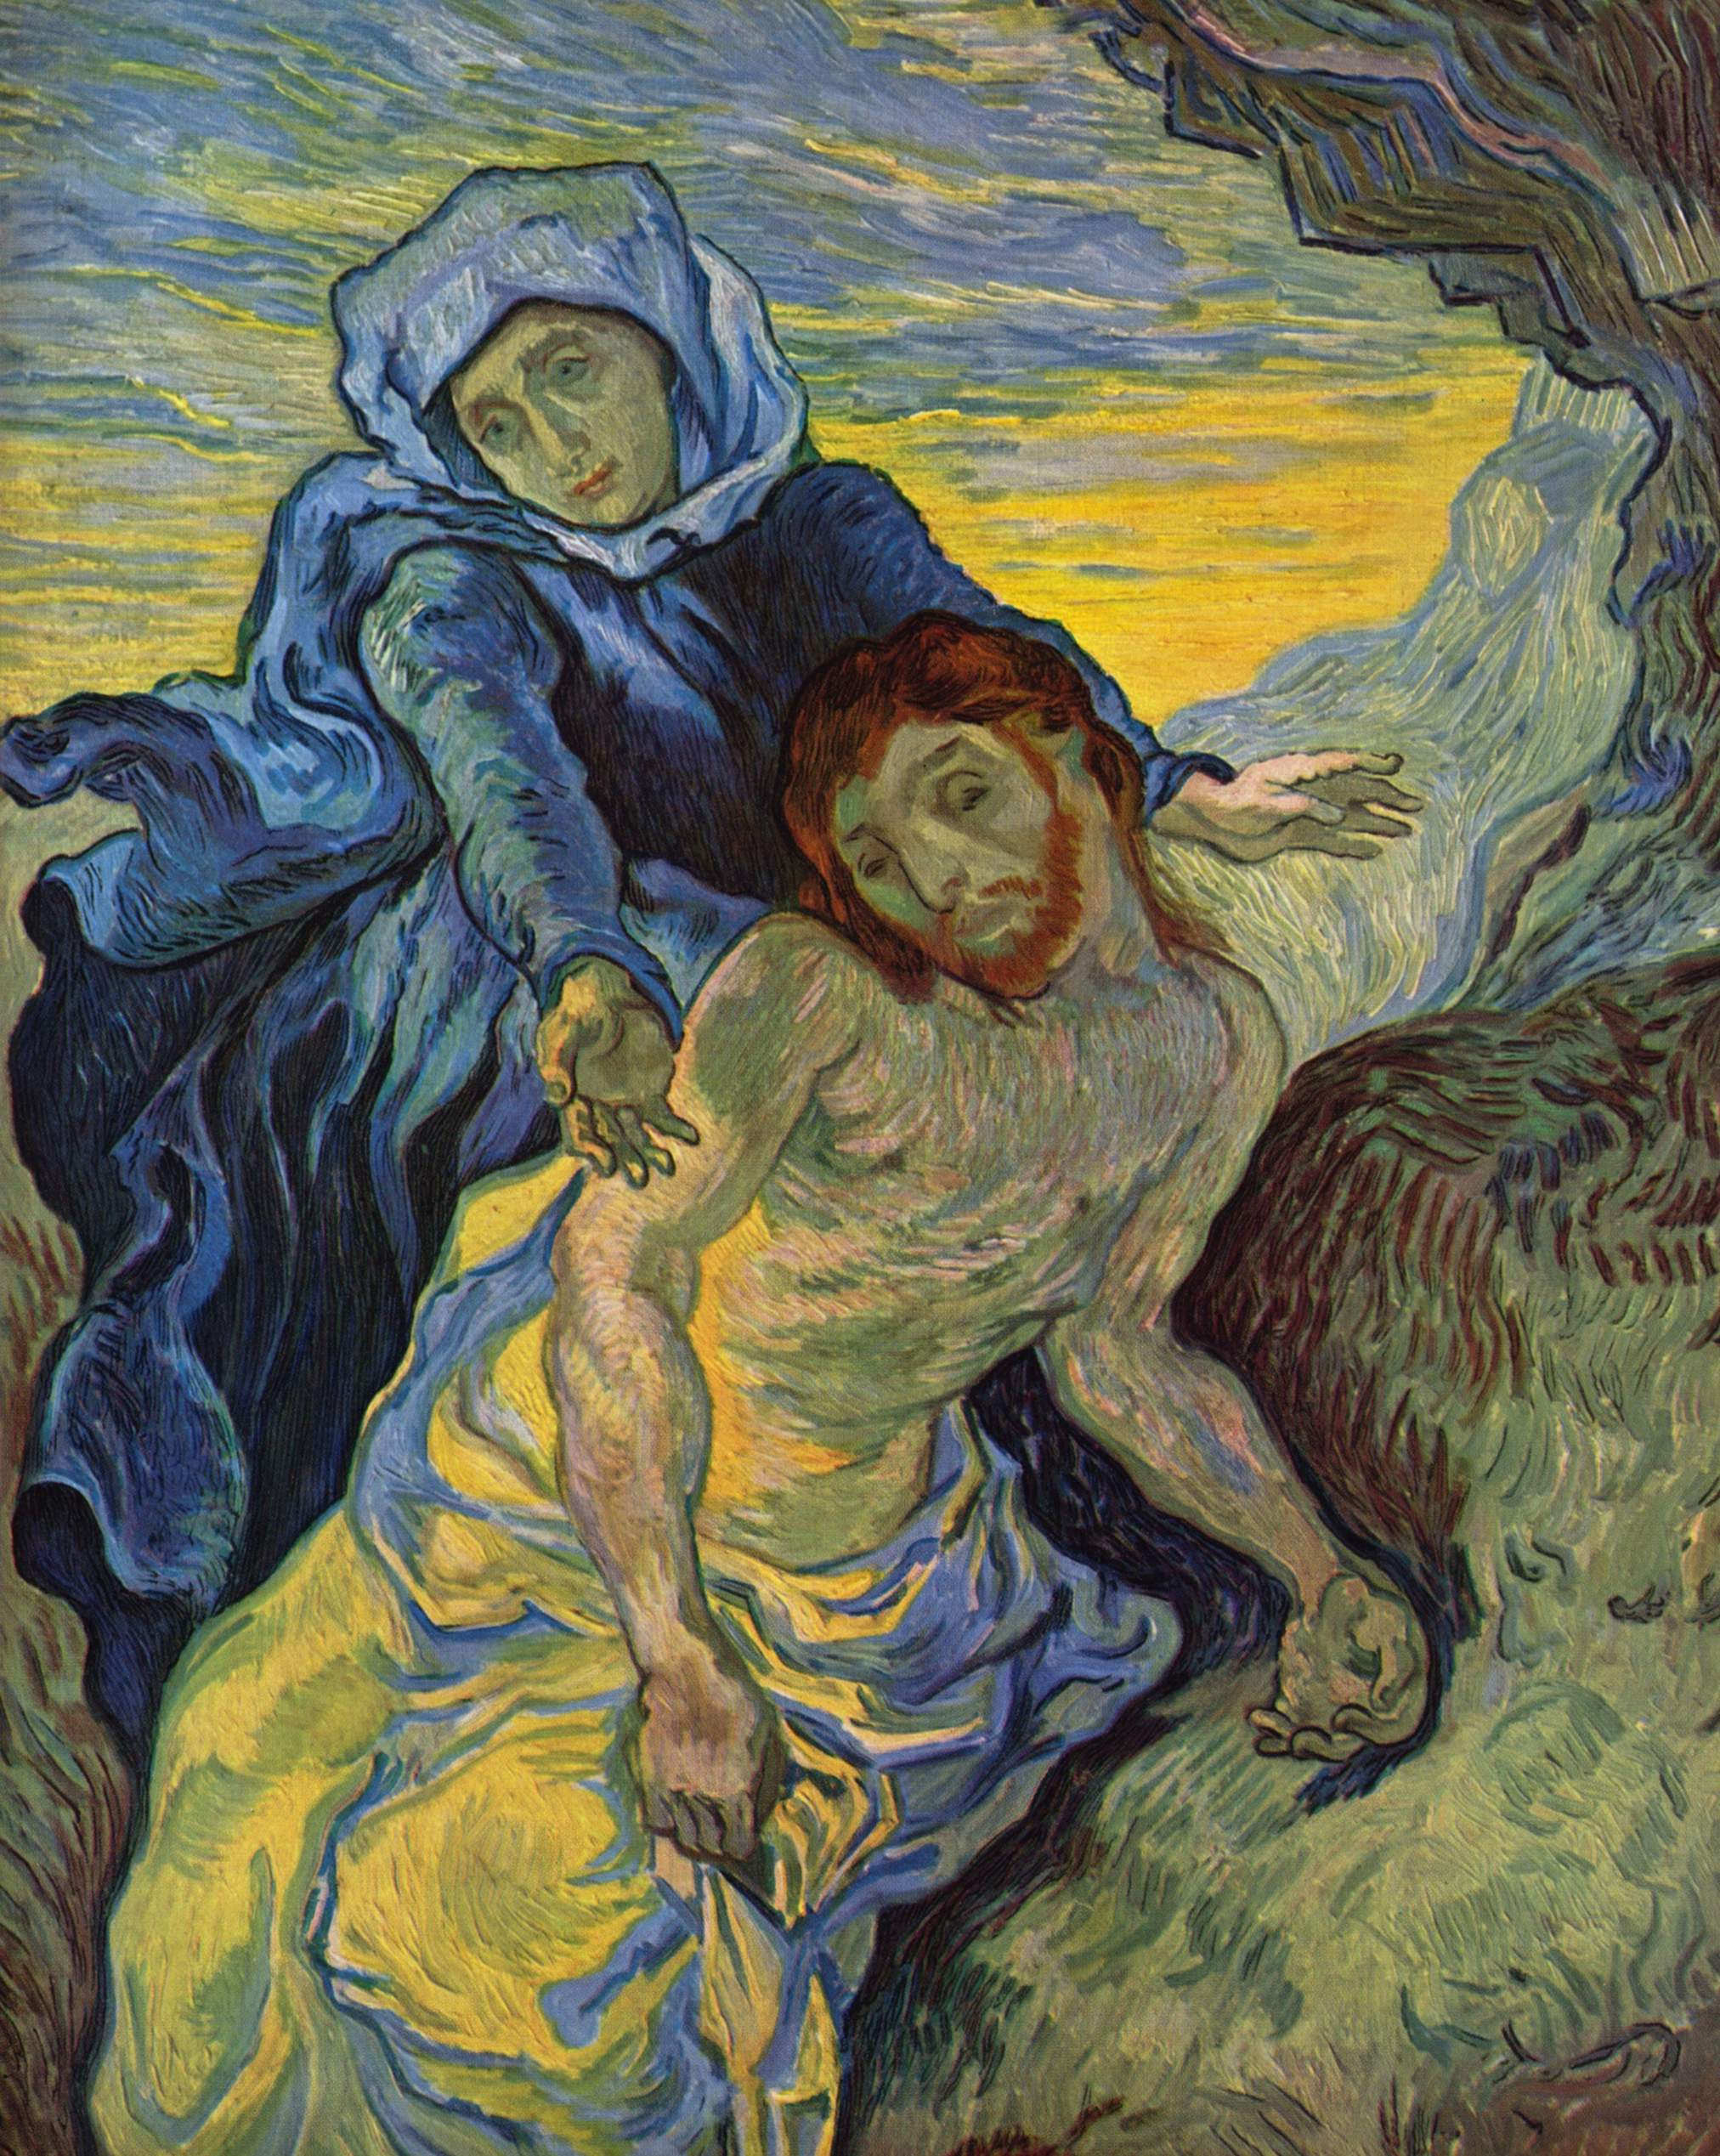 """Pieta"" of Jesus and Mary Painted by Van Gogh in 1890"